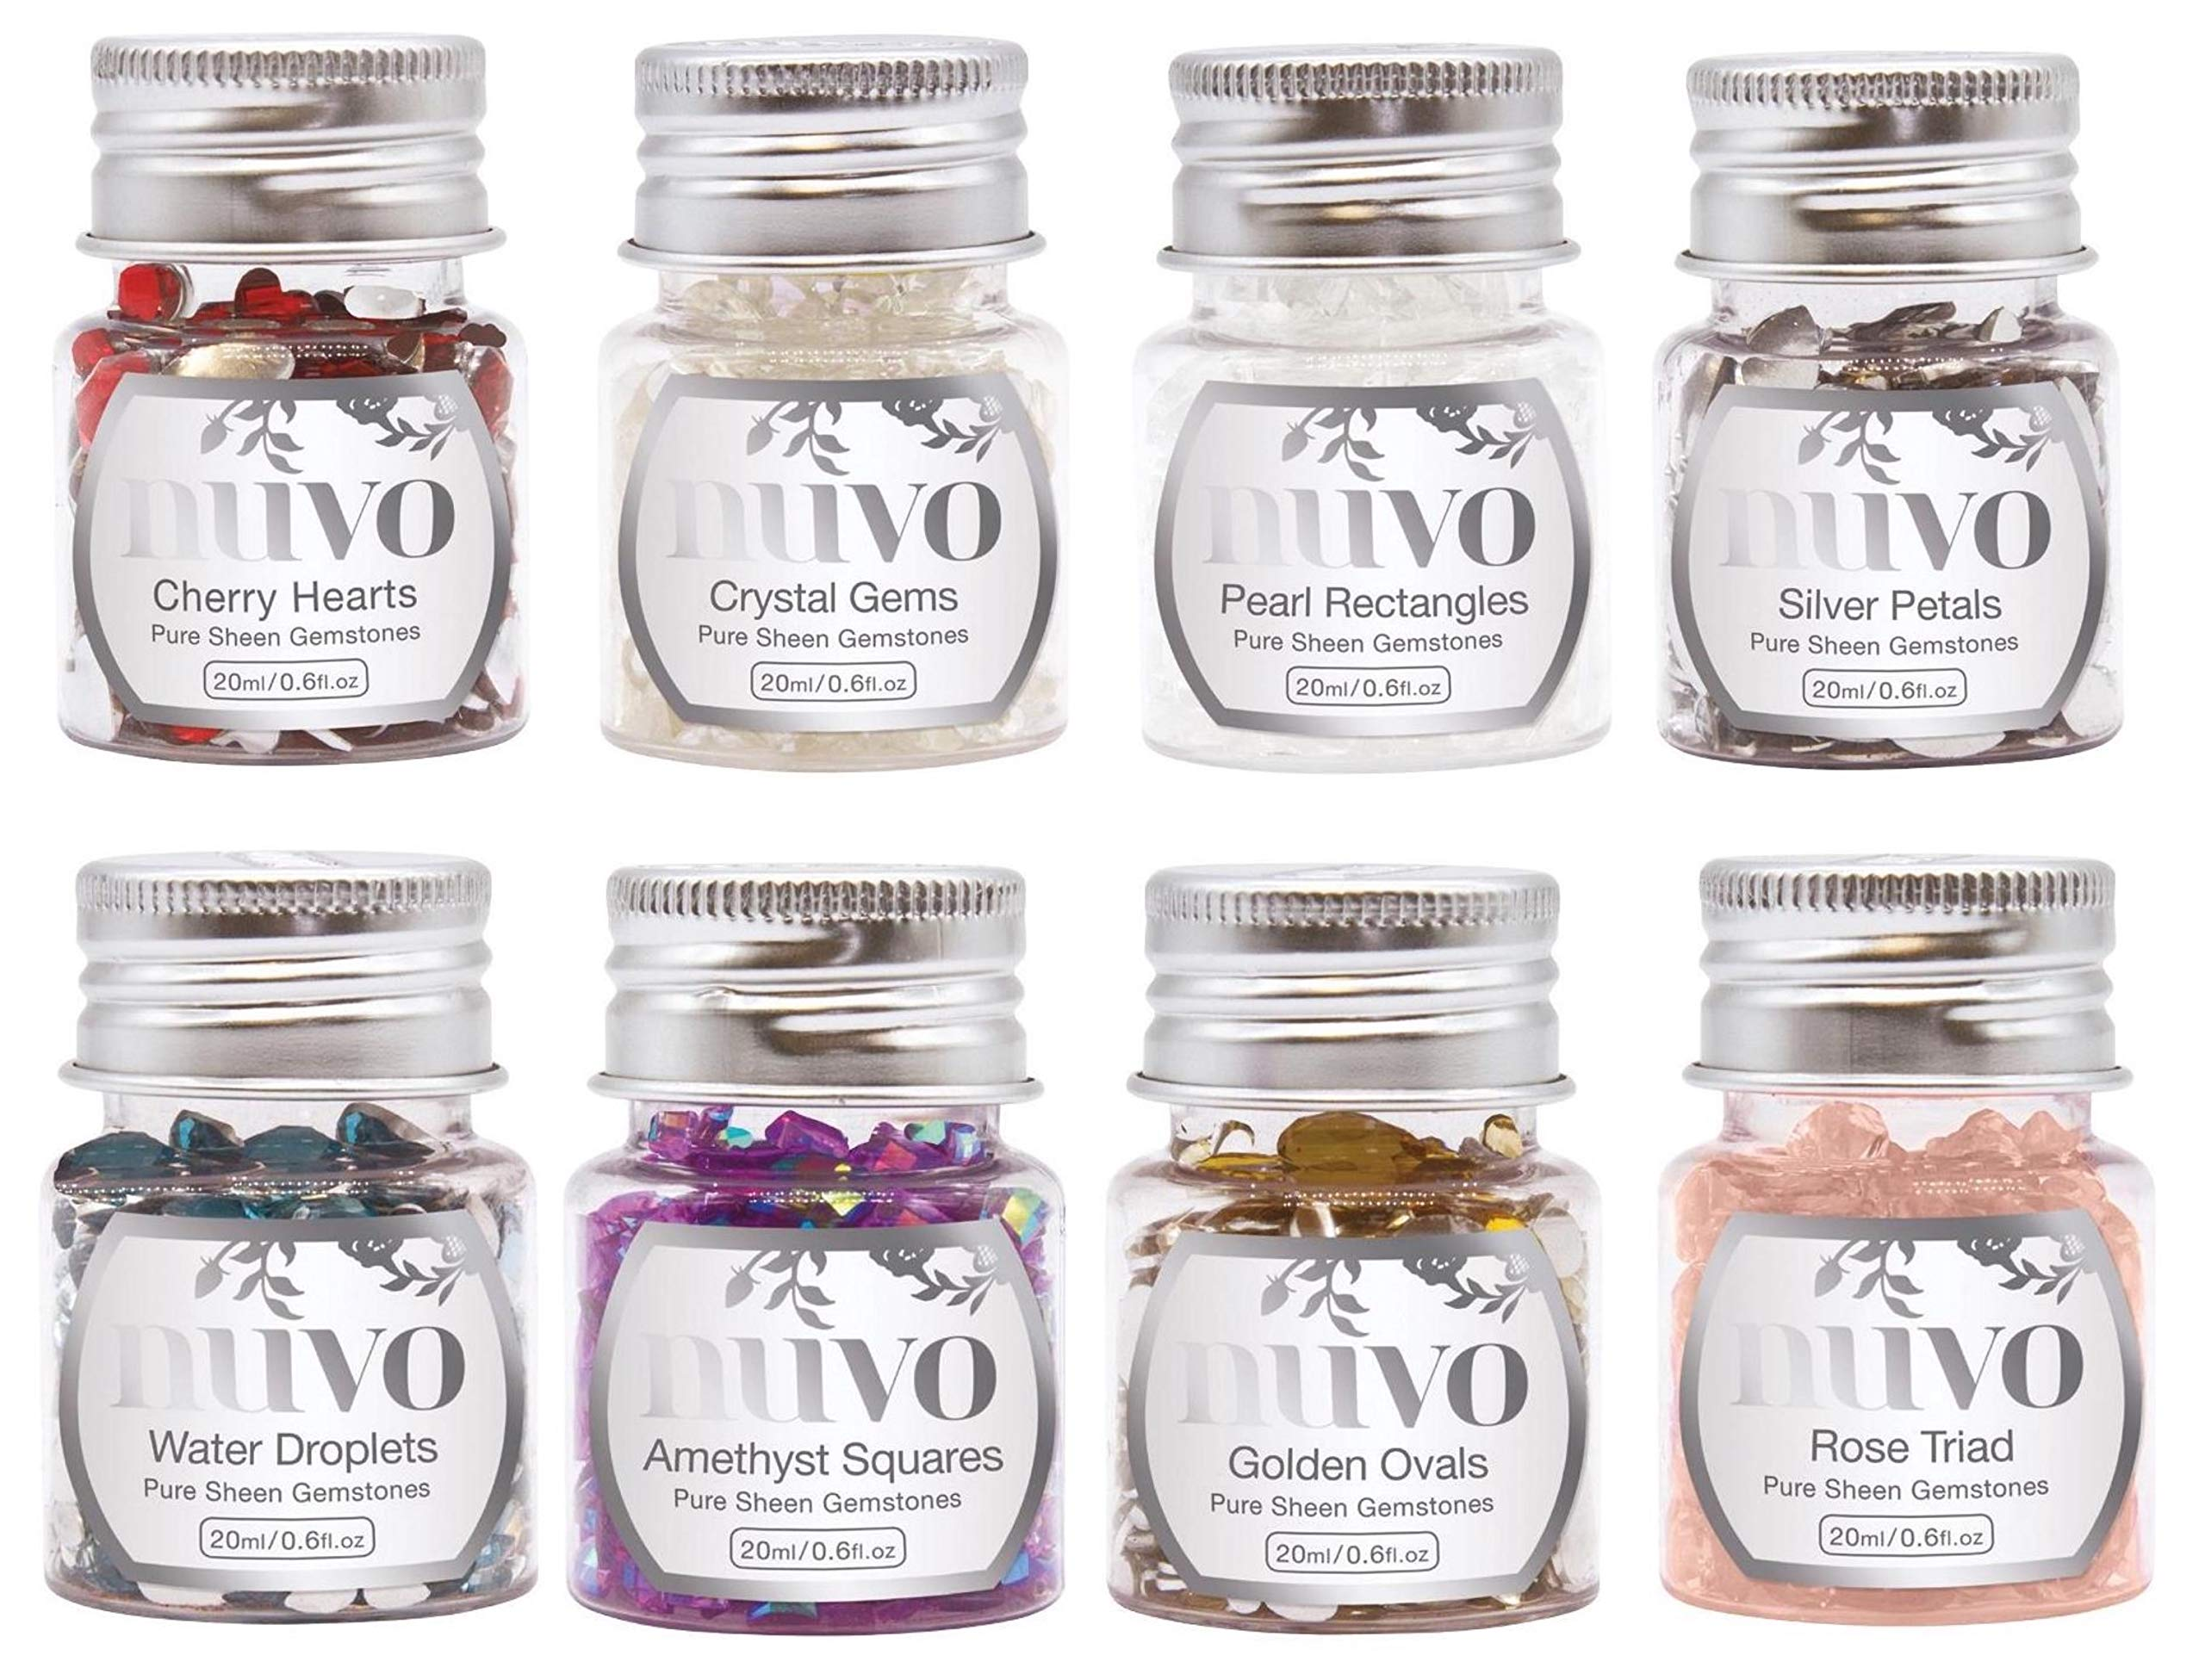 Nuvo by Tonic Studios - Pure Sheen Gemstones, 8 Jars, 20 ml Each, 8 Colors and Shapes